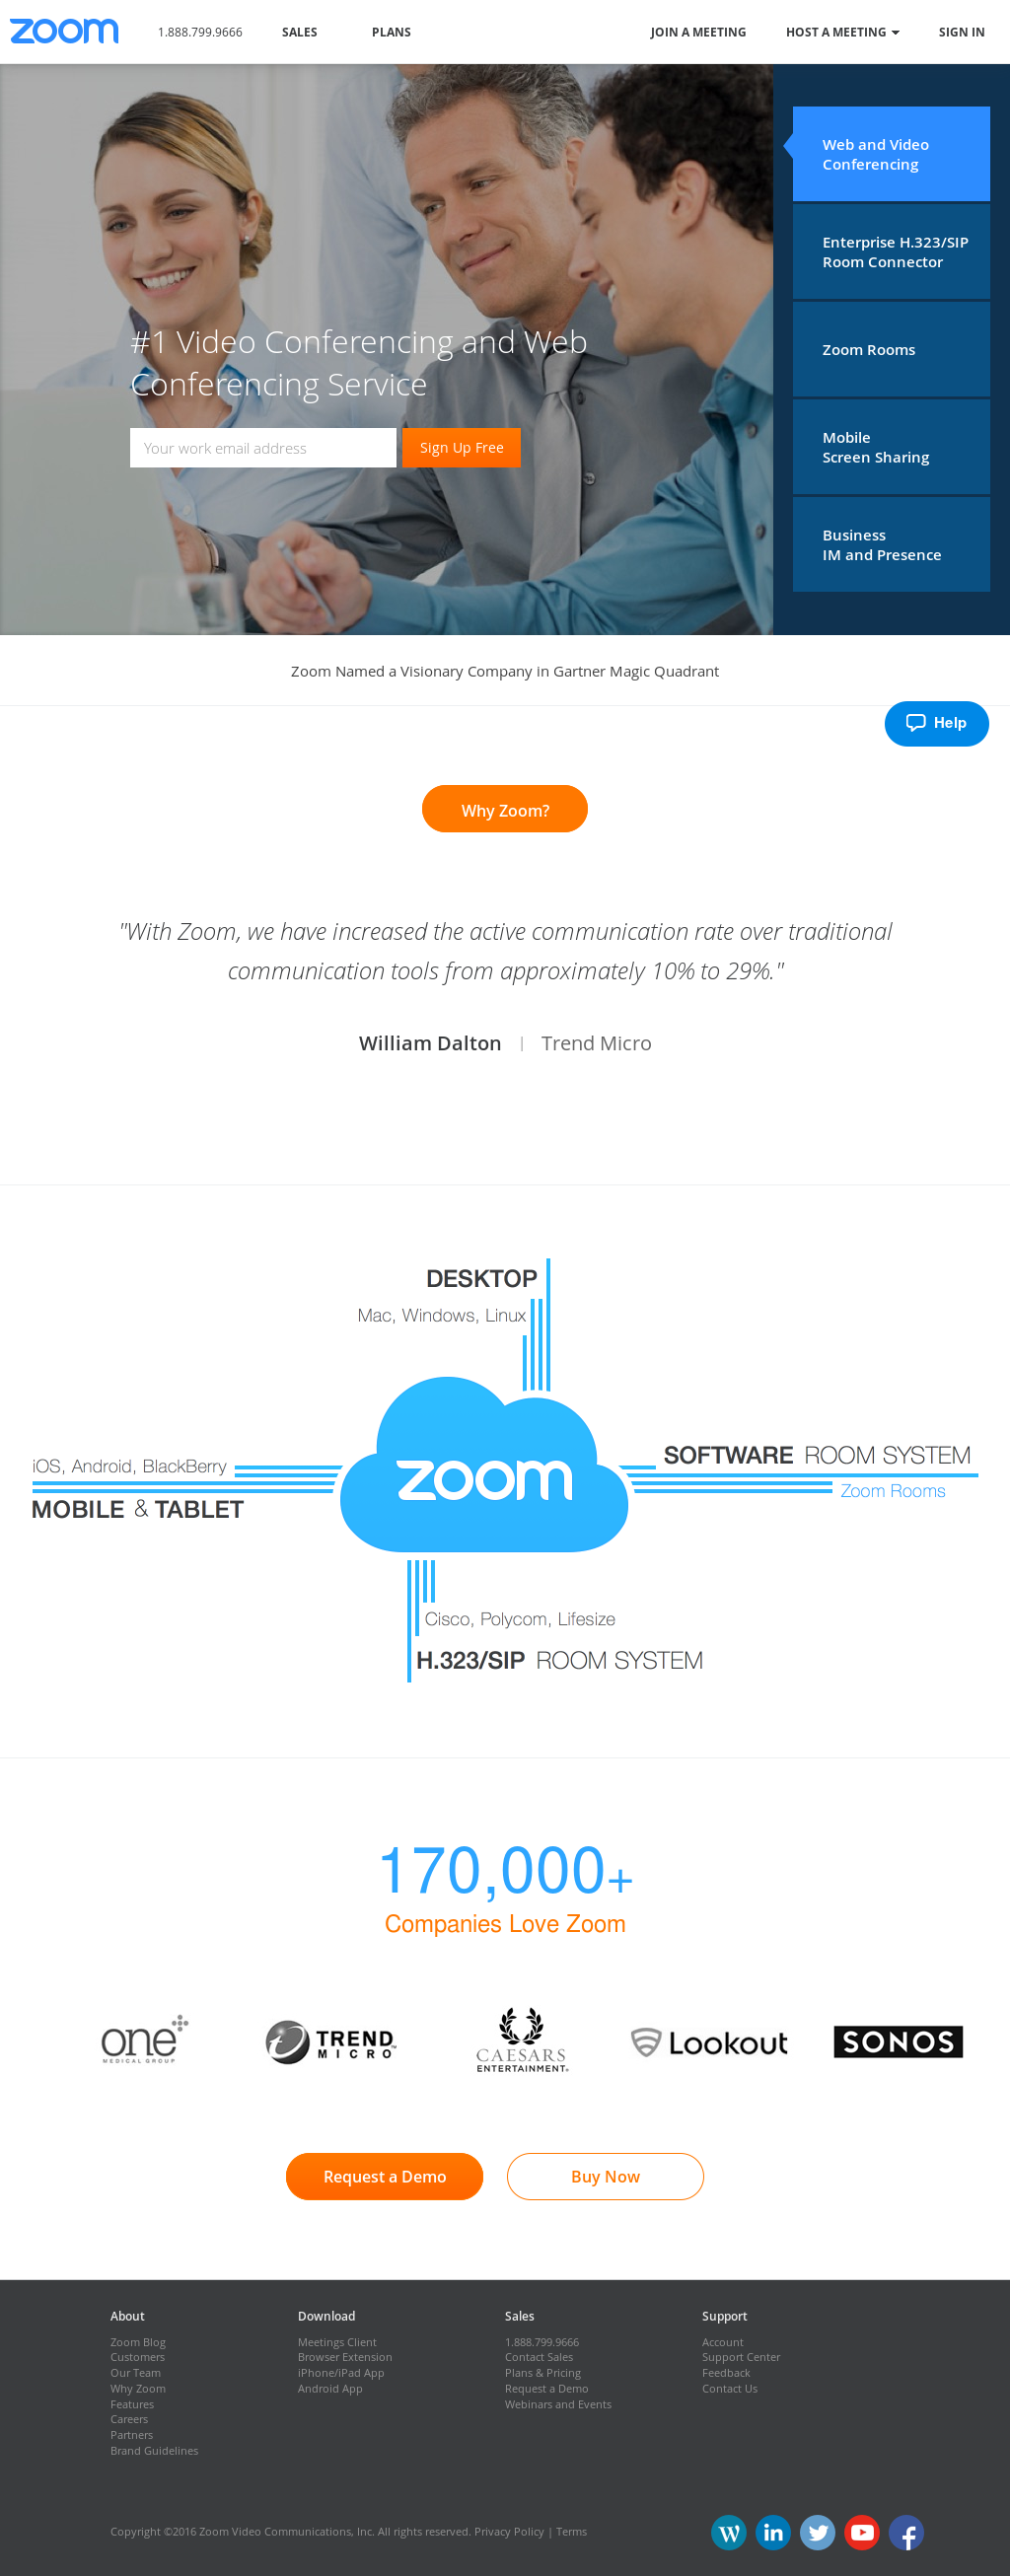 Zoom Competitors, Revenue and Employees - Owler Company Profile